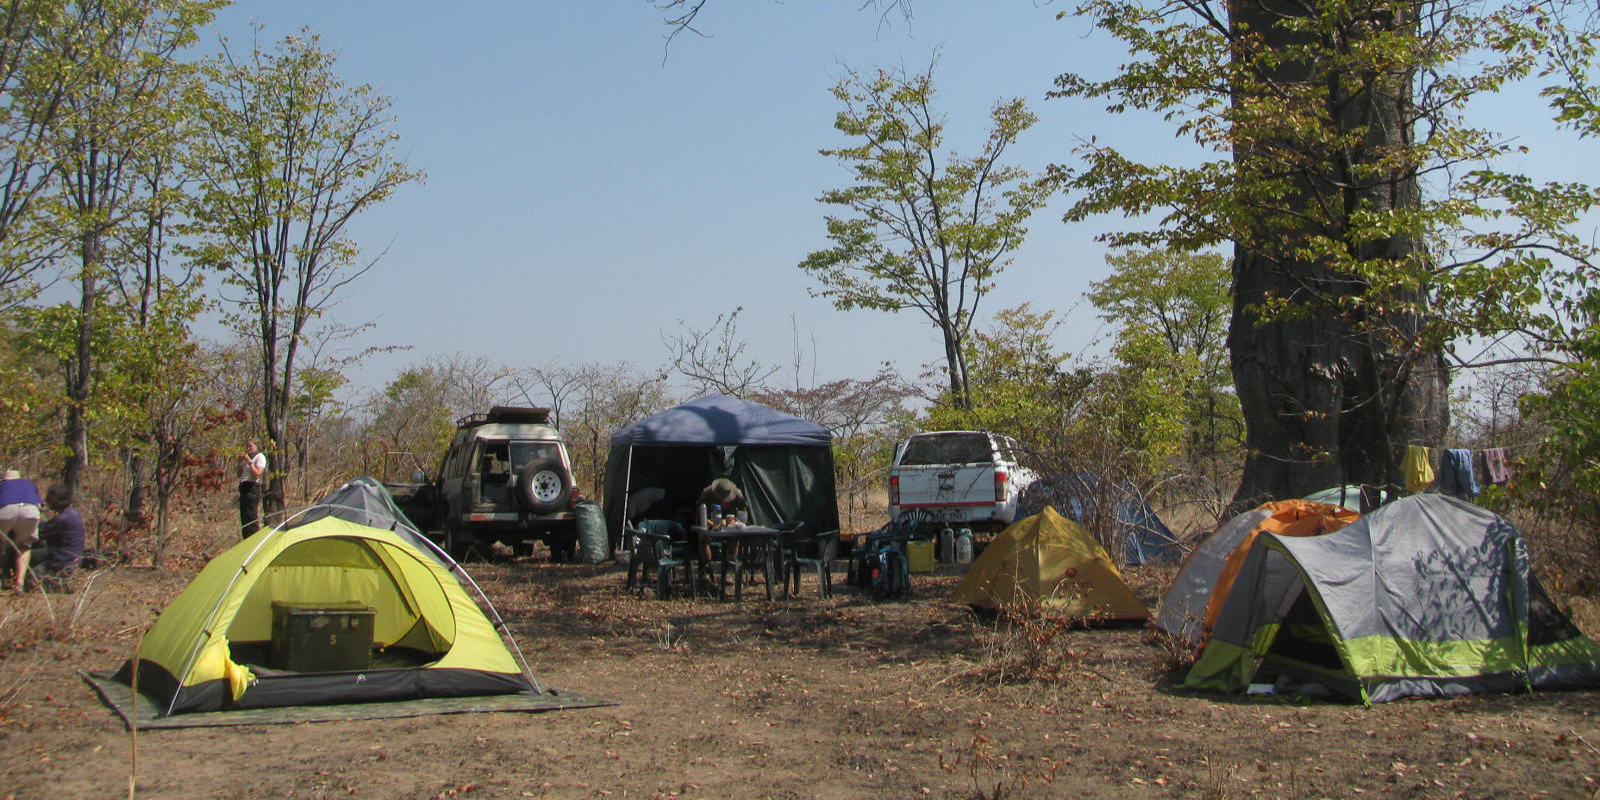 Tents and vehicles on flat terrain